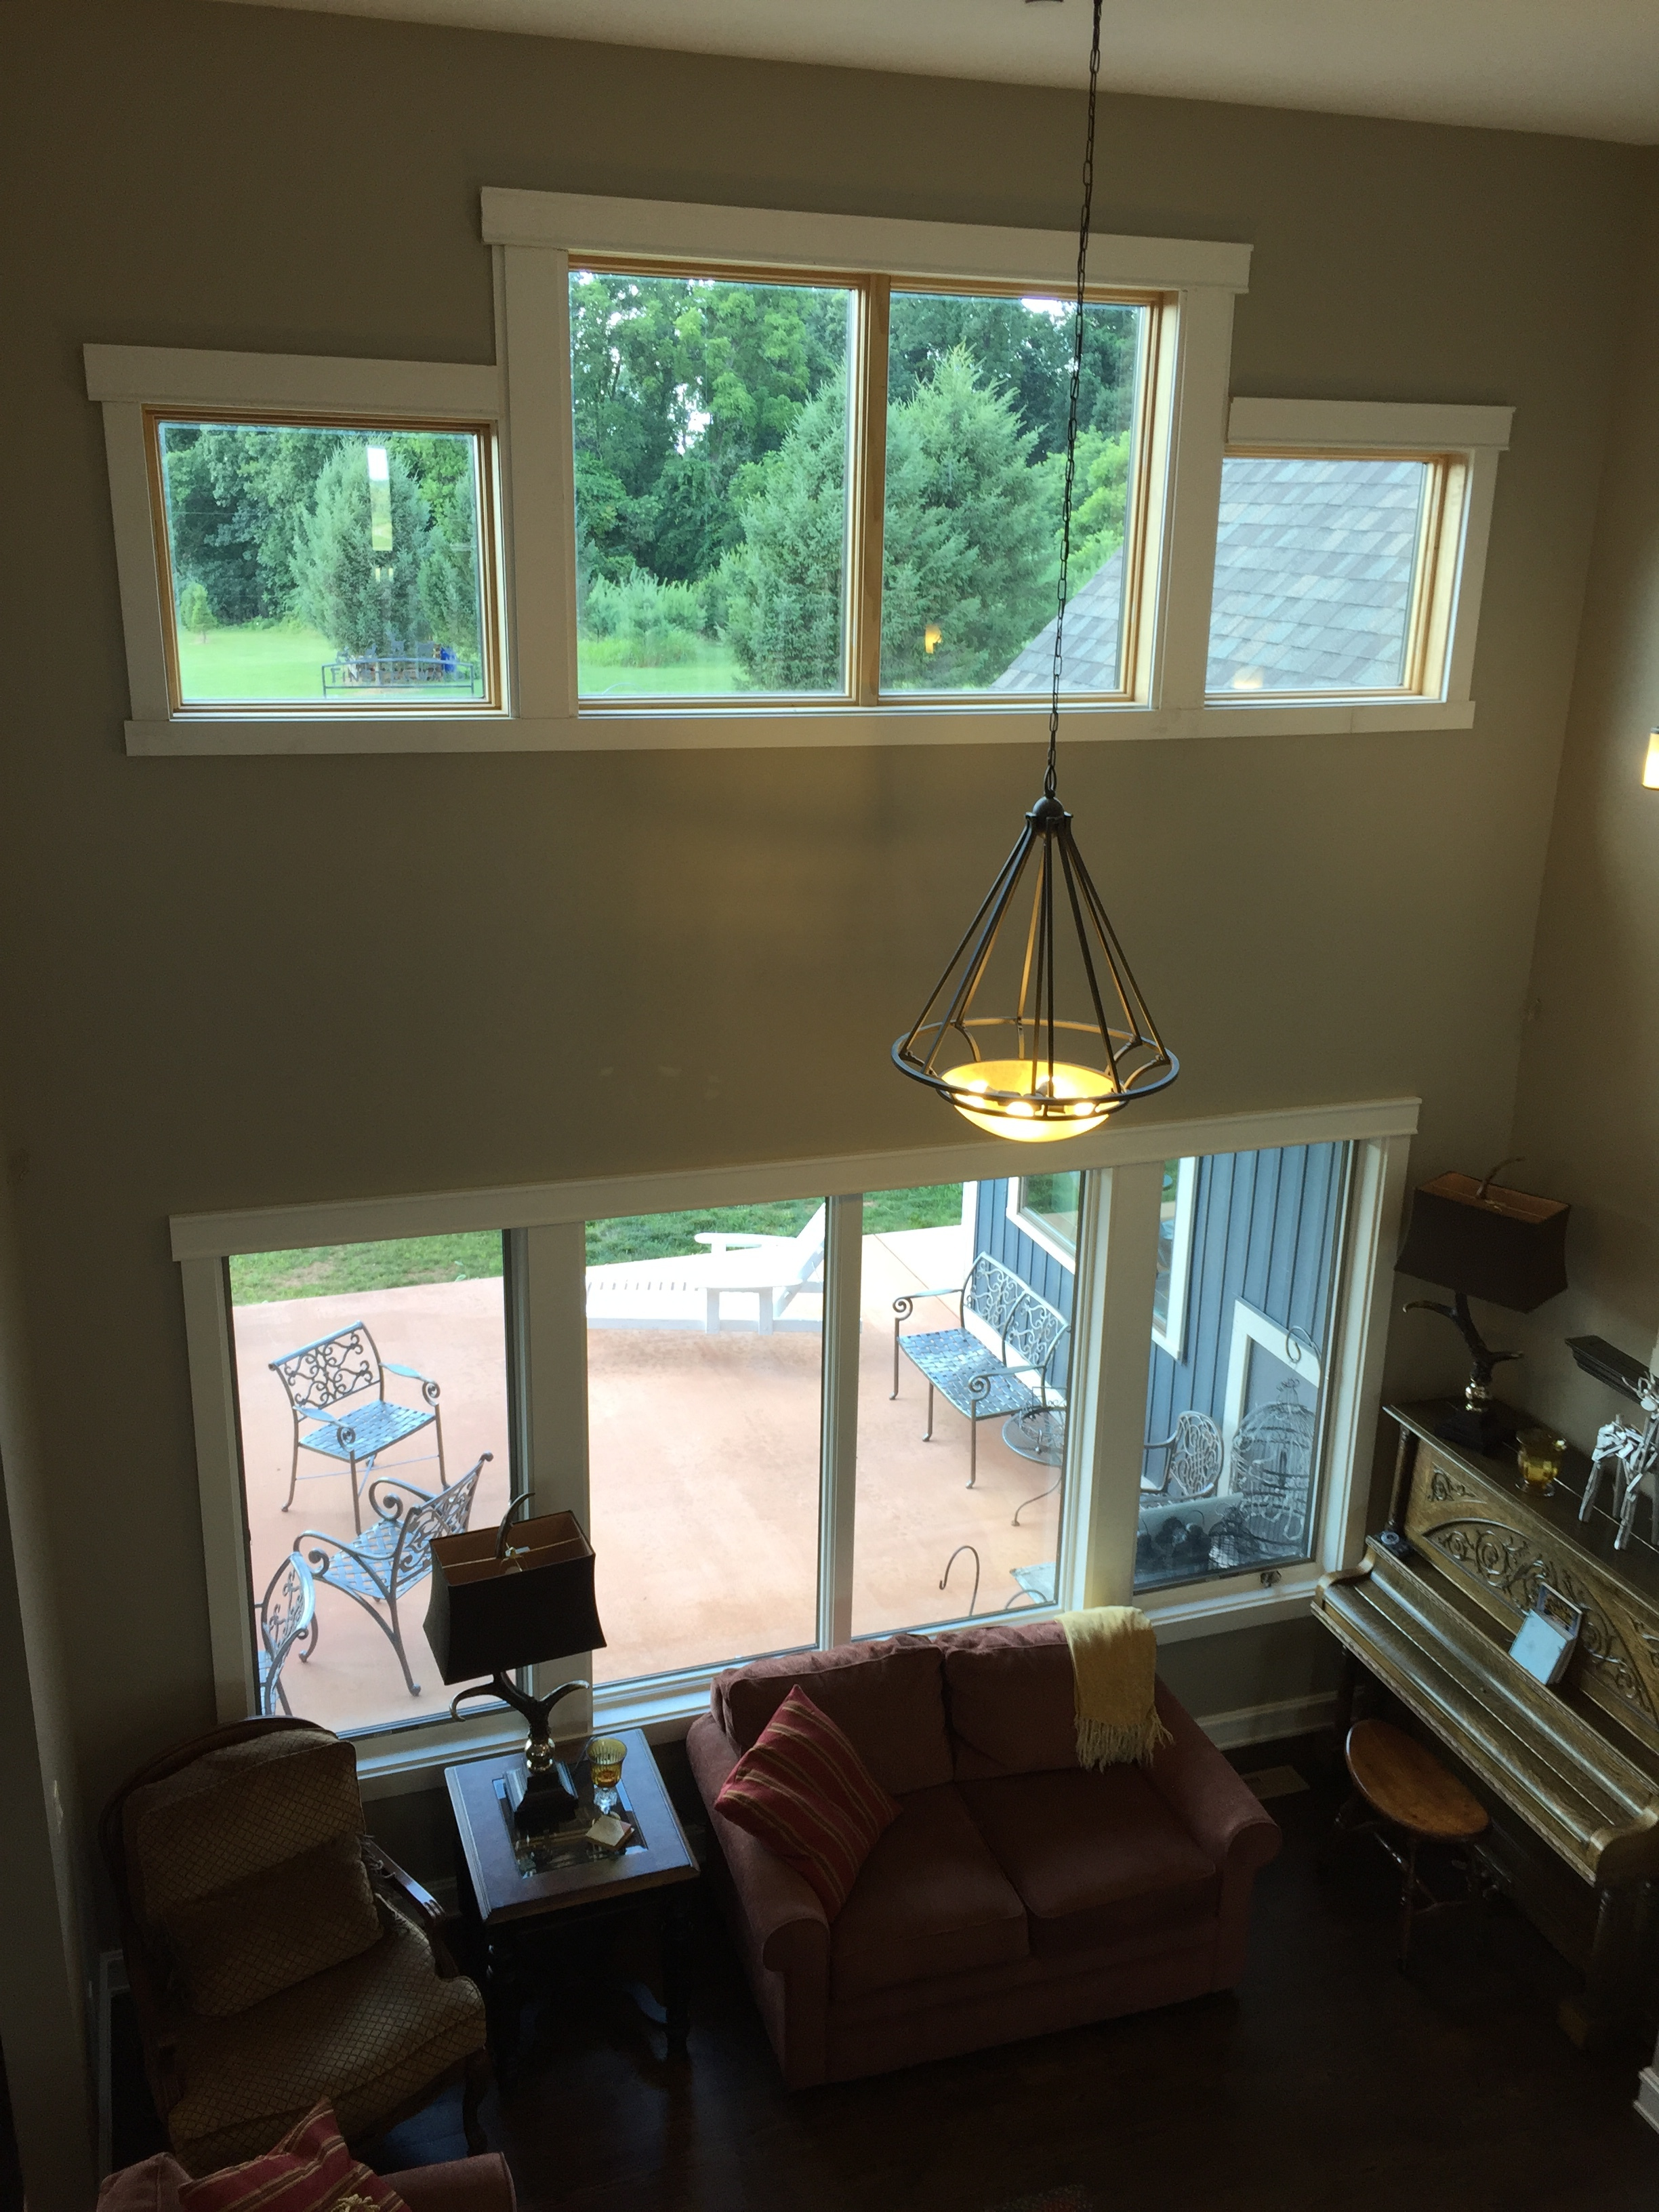 The windows of the two-story living room are spaced apart vertically to fit a patio shed roof between the upper and lower units.